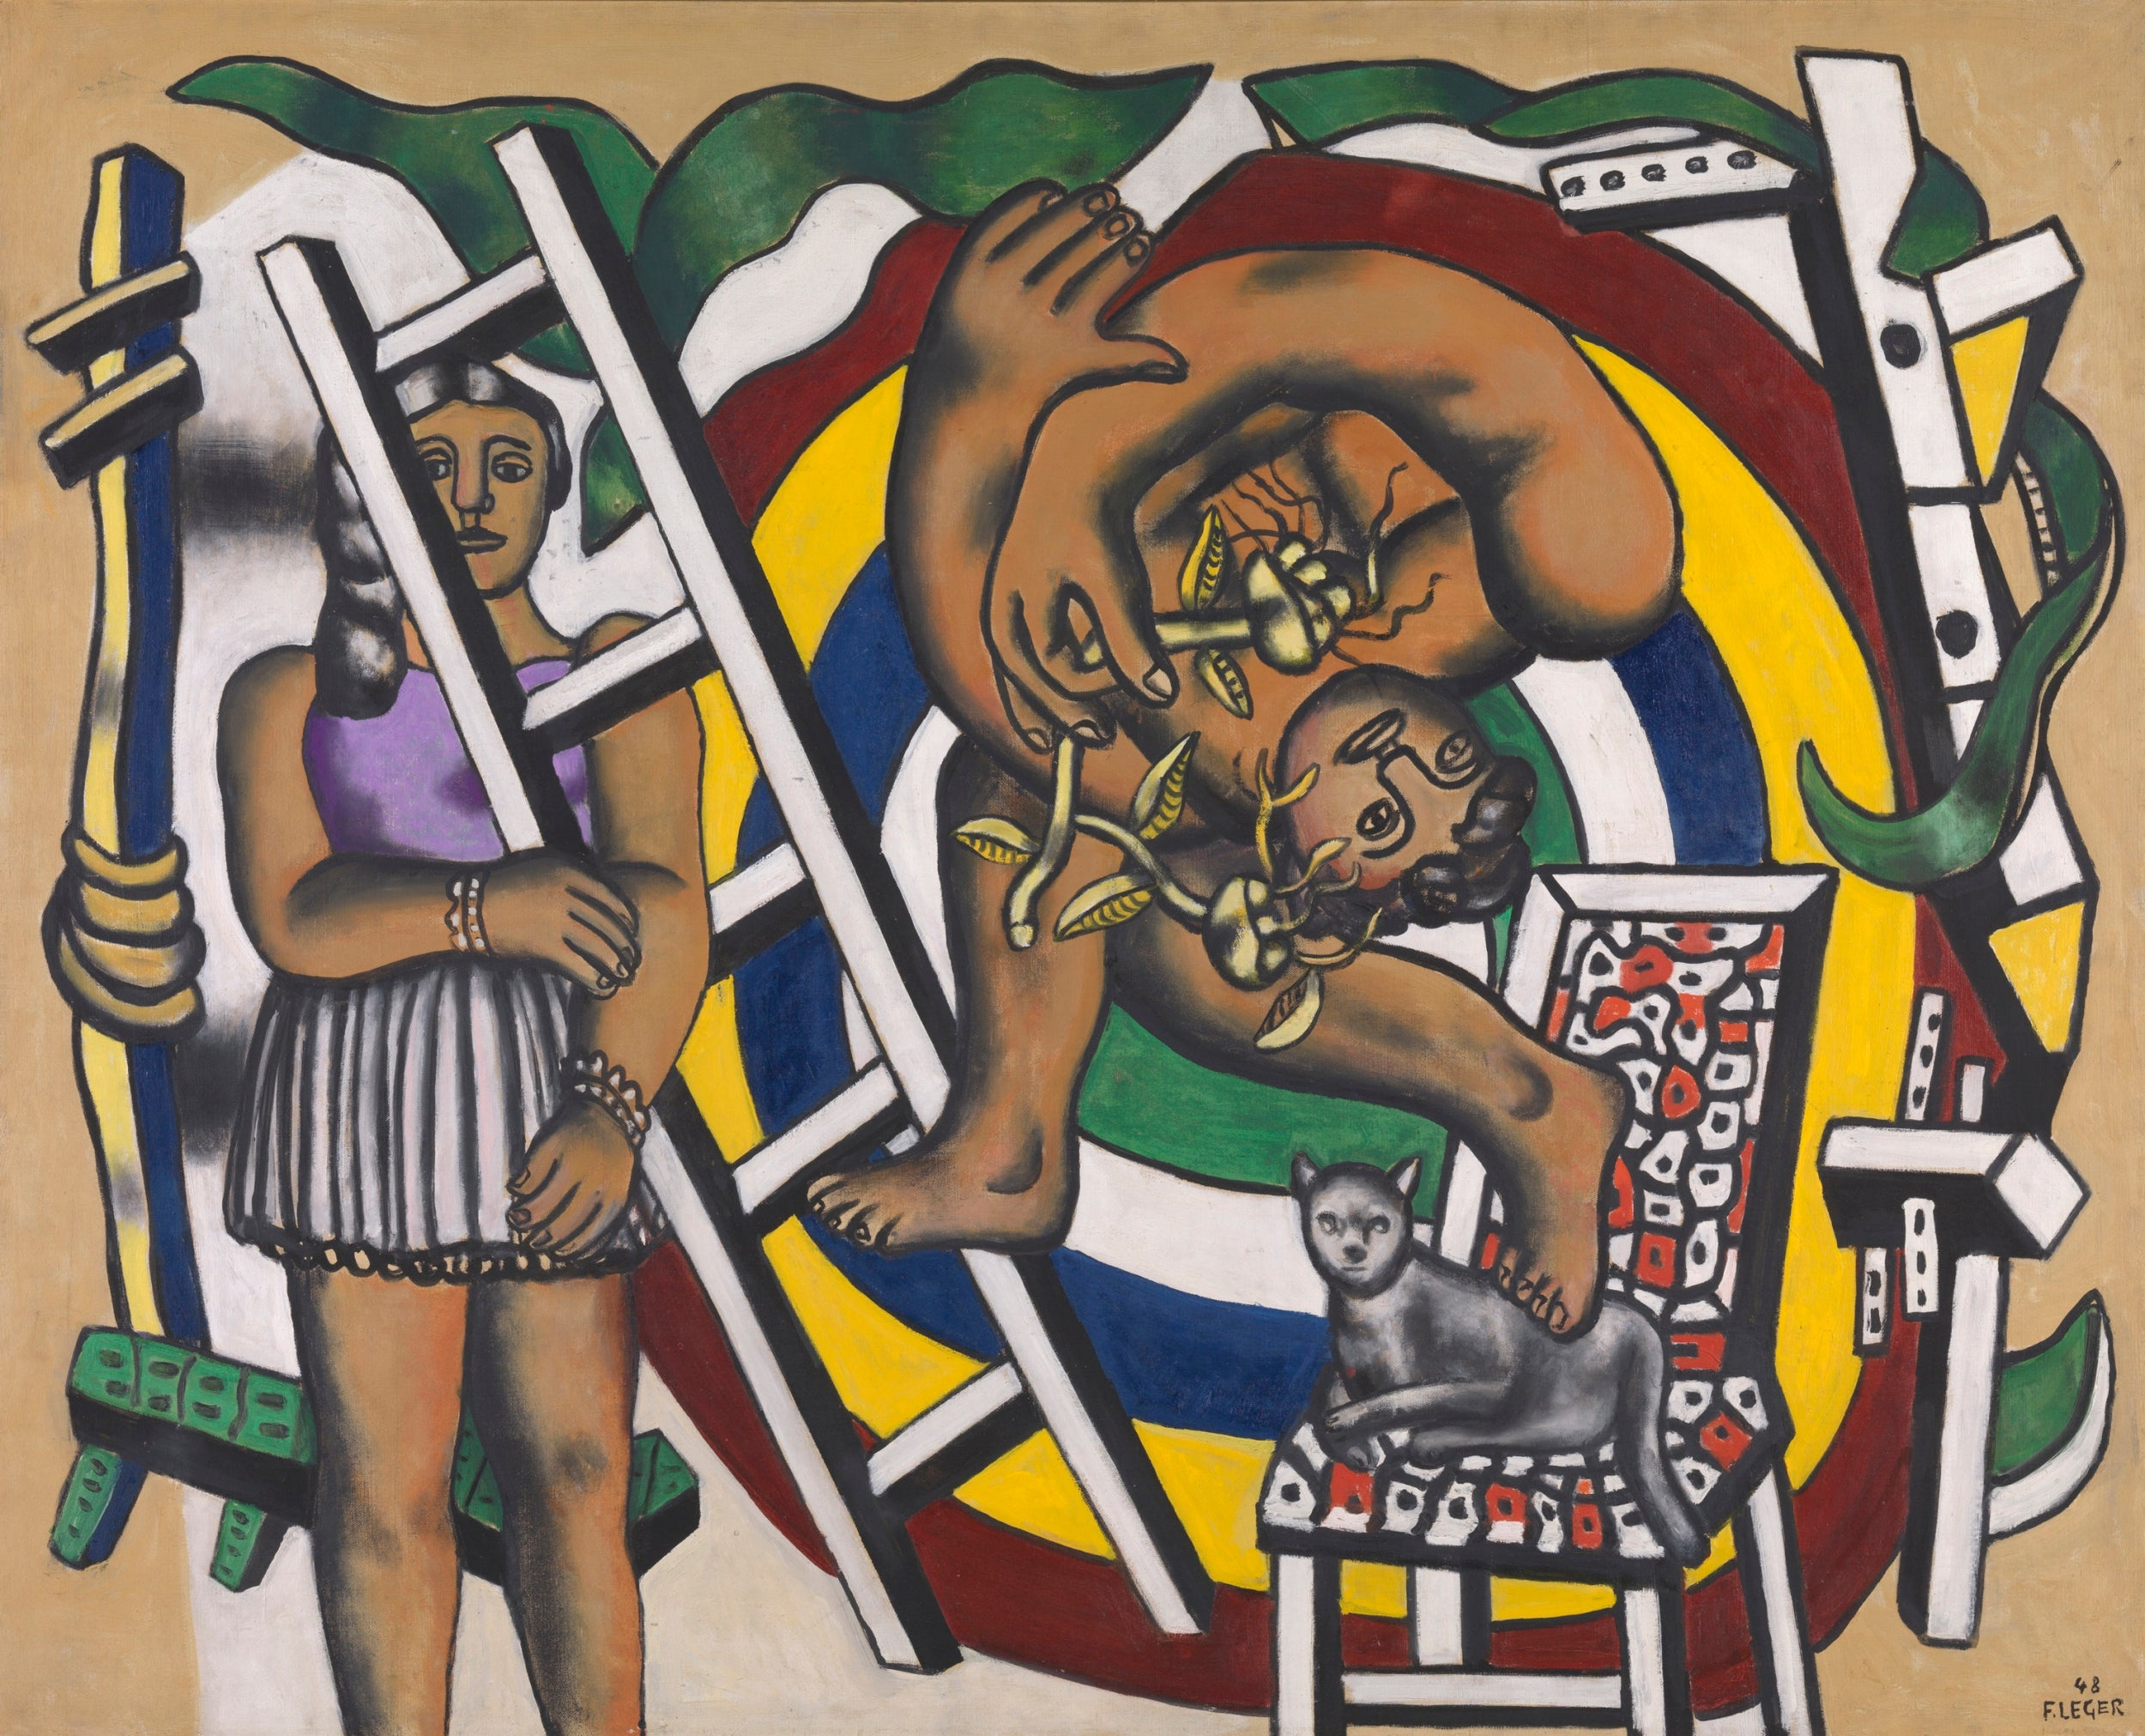 Fernand Leger The French Artist Whose Abstract Mechanical